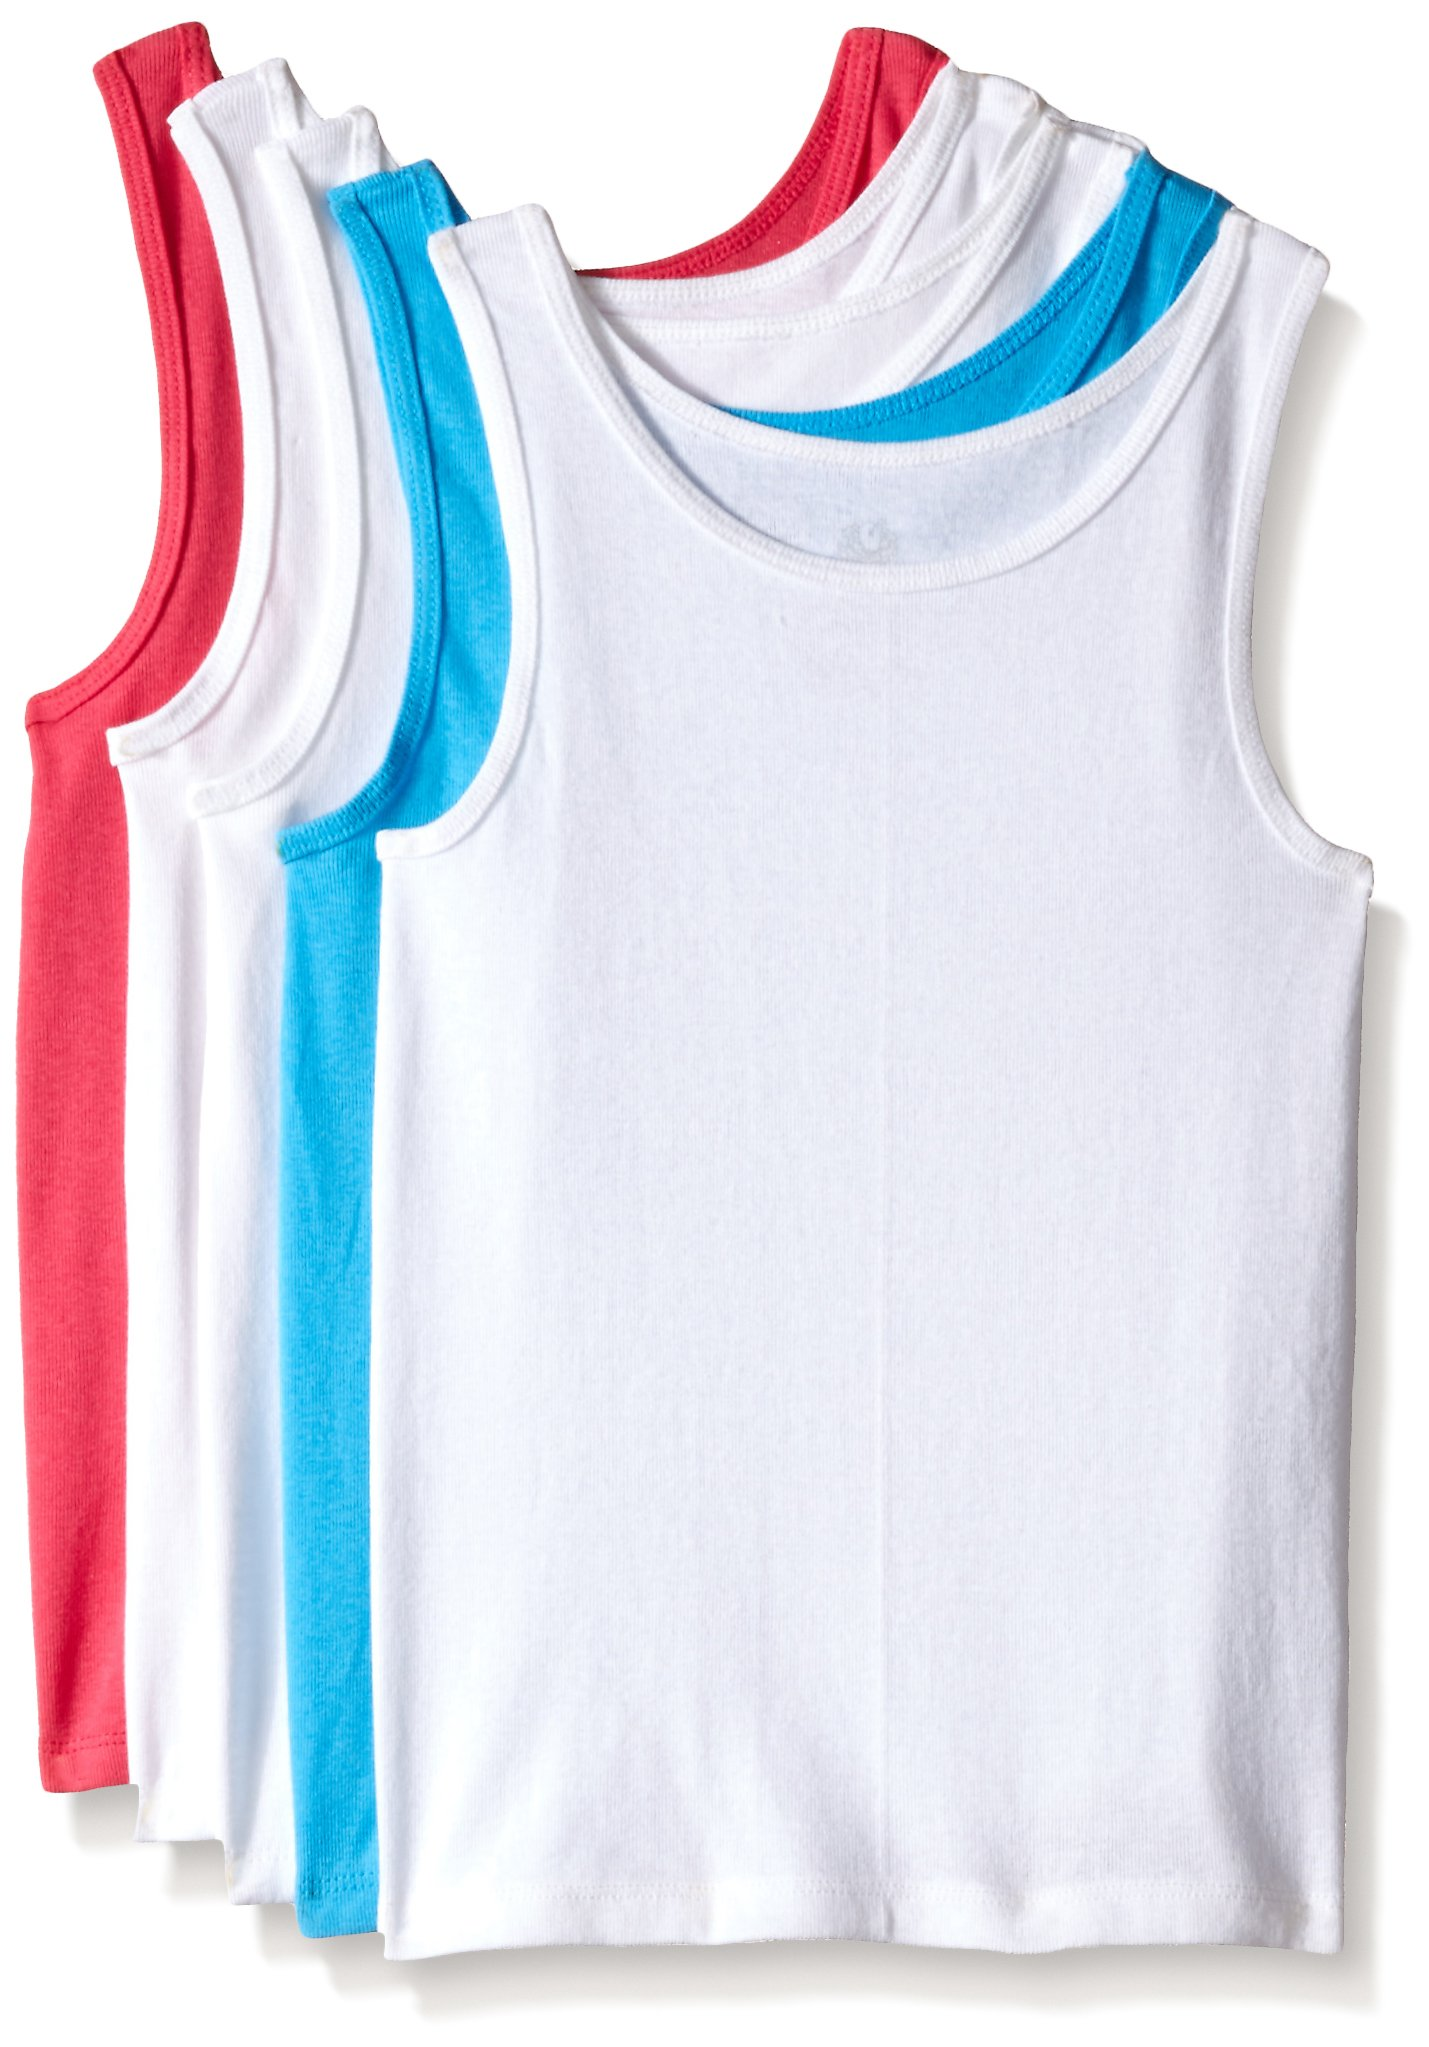 Fruit of the Loom Big Girls' Assorted Tank (Pack of 5)